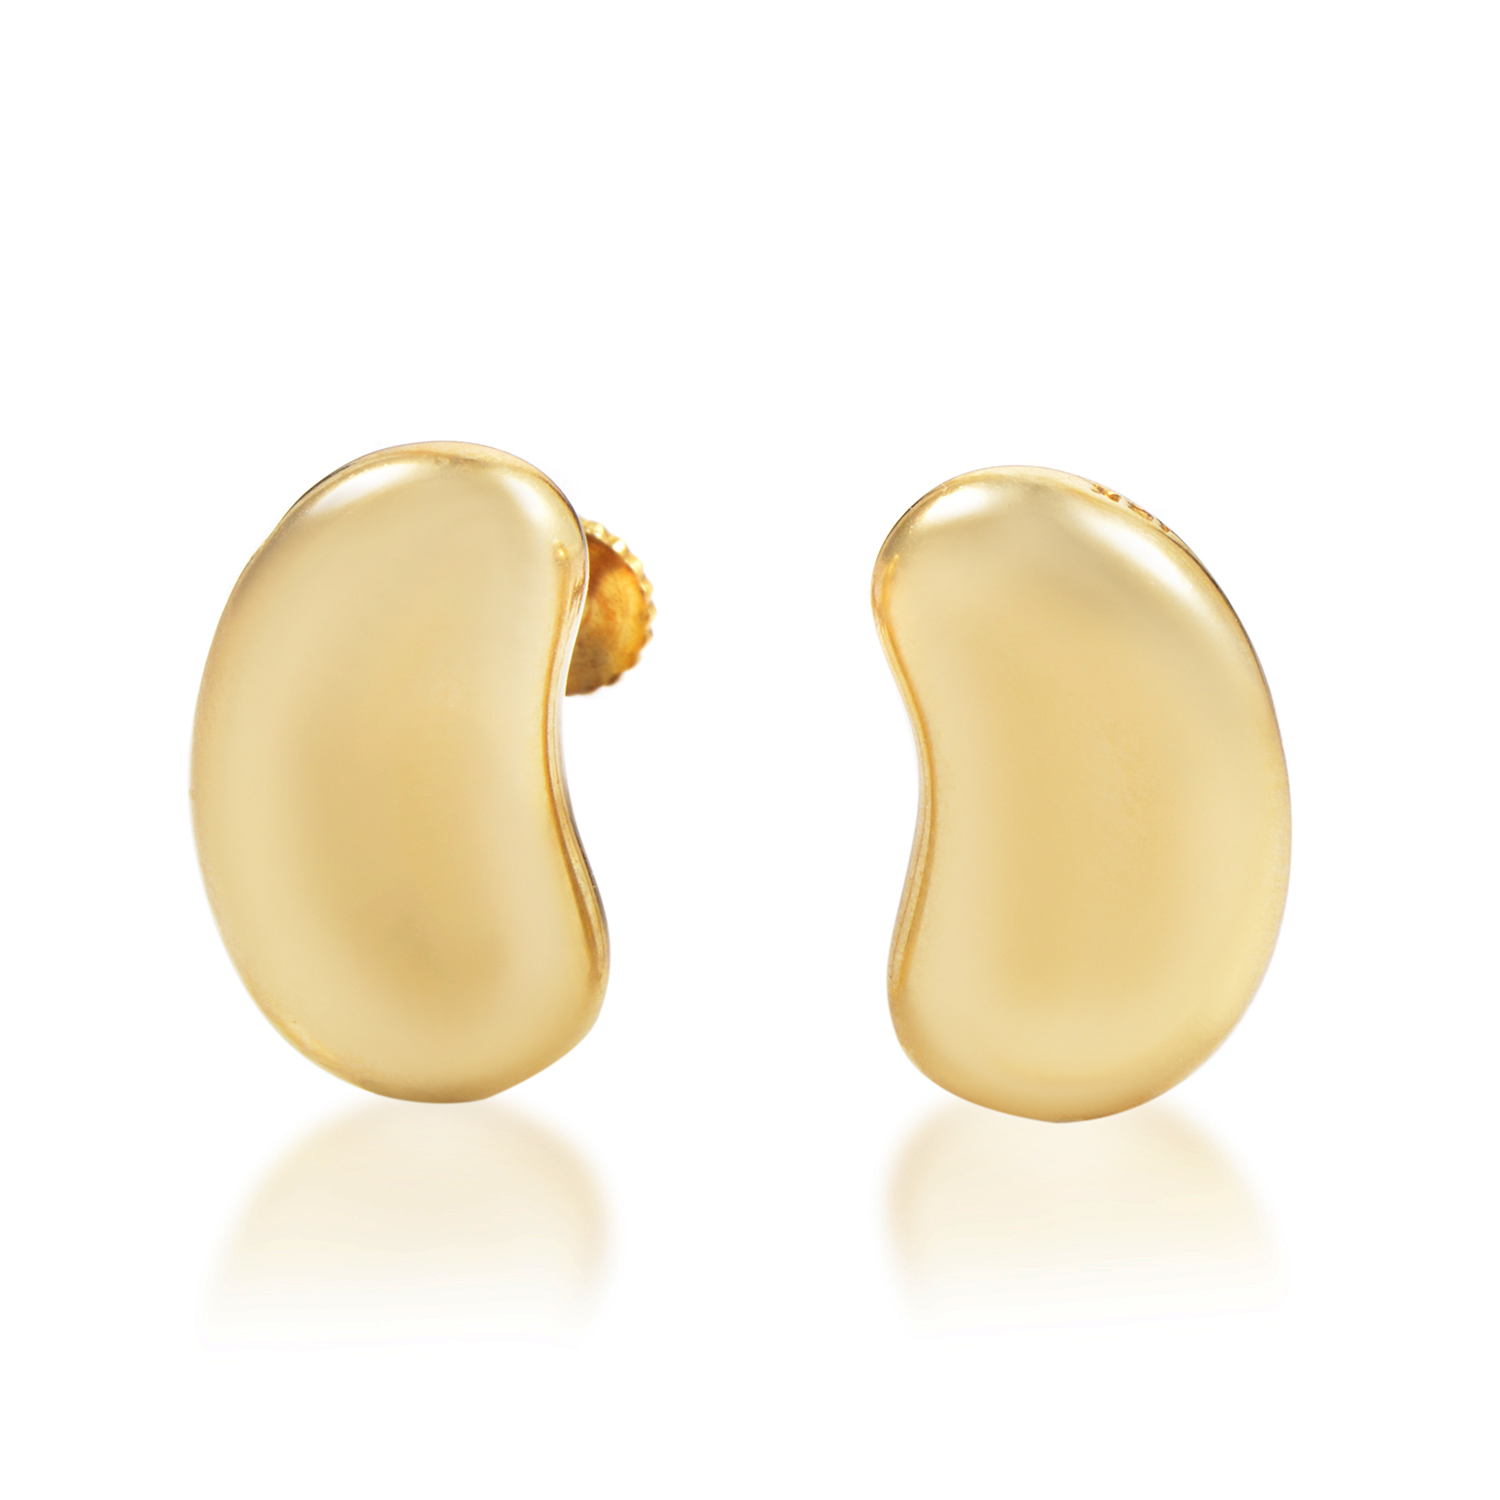 Tiffany & Co. Elsa Peretti Women's Small 18K Yellow Gold Bean Earrings